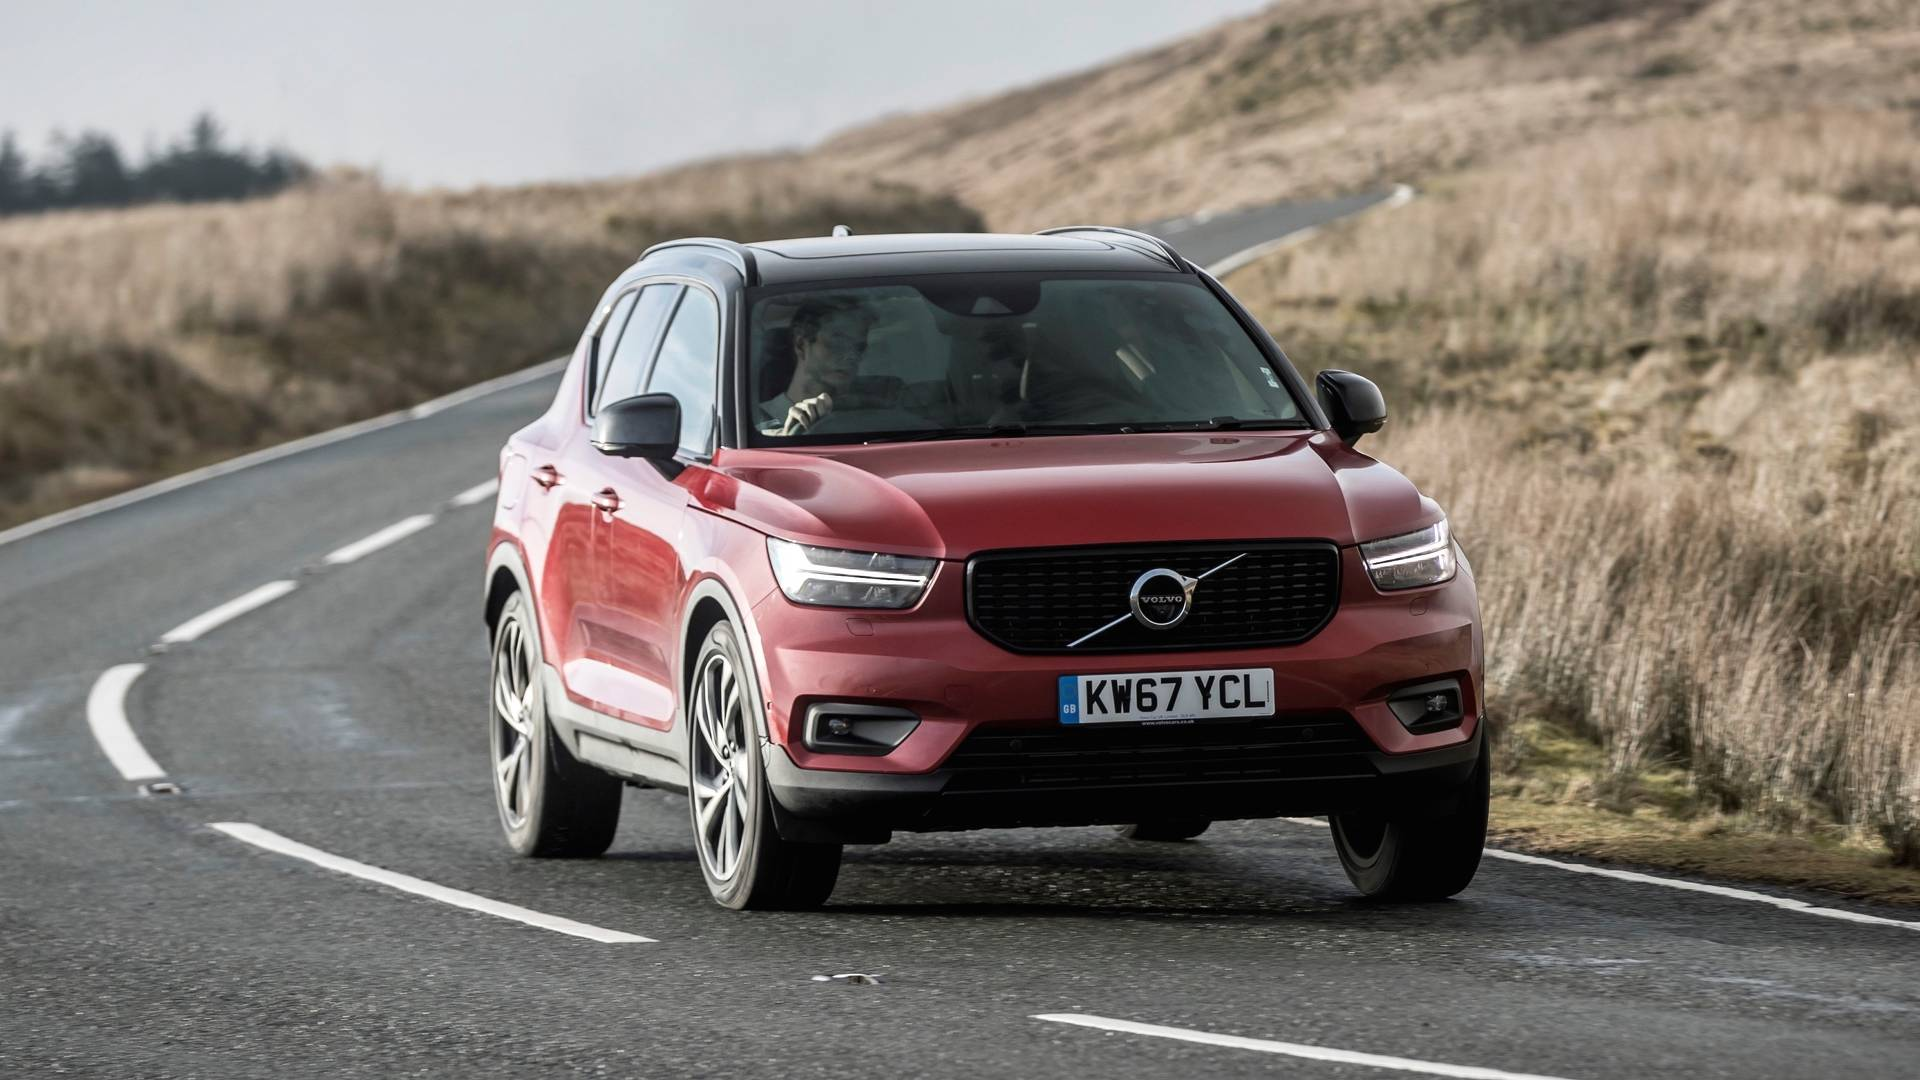 Volvo XC40 corners on a twisty country road, a place where it feels surprisingly at home.